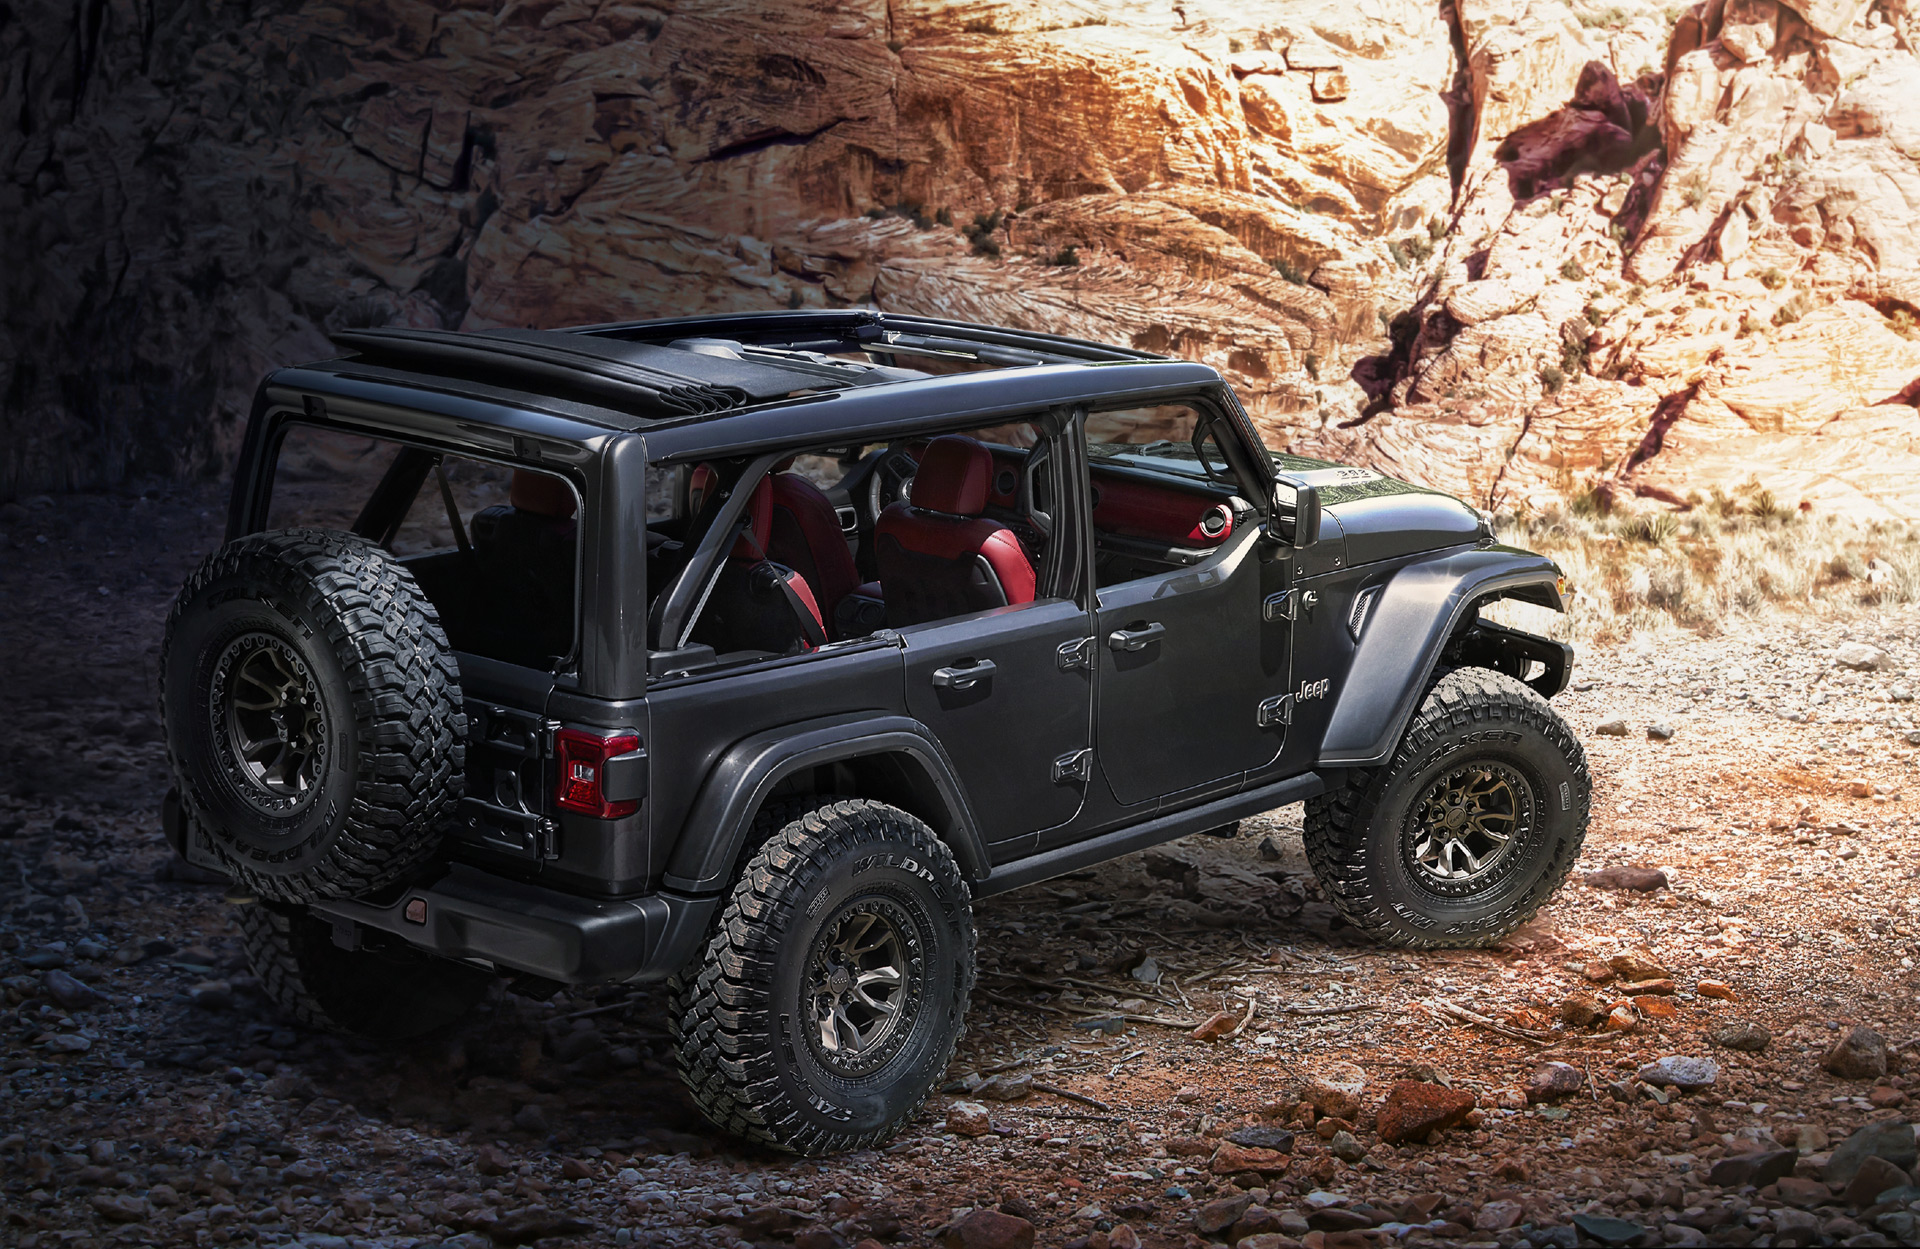 jeep wrangler v8 tesla model y price cut 2021 ford